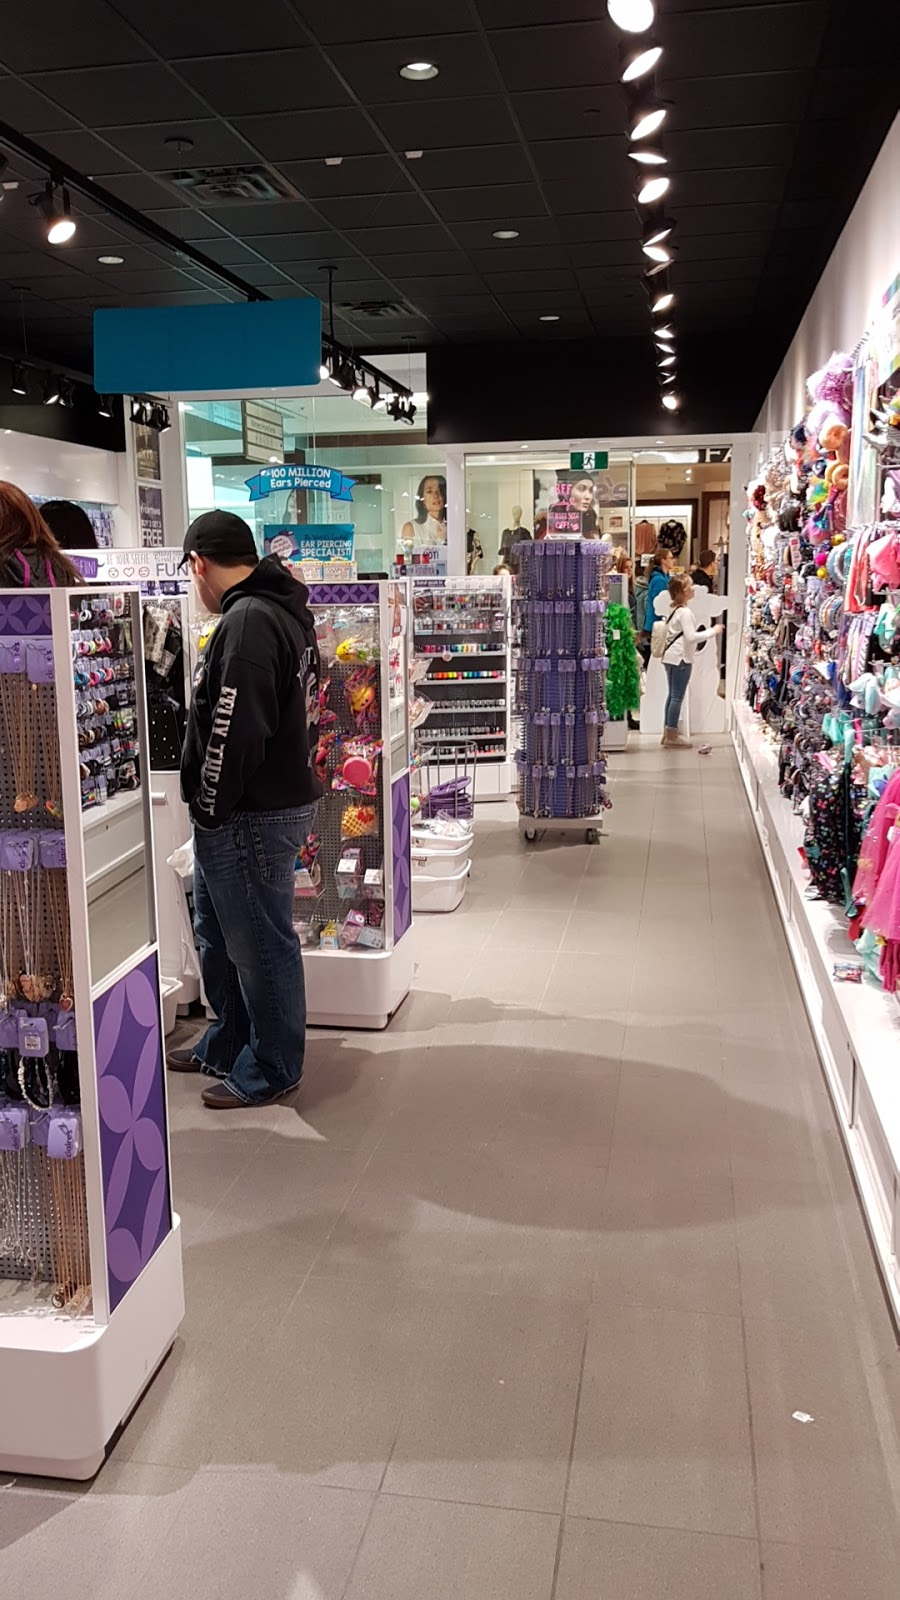 Claires | jewelry store | 21 Micmac Blvd, Dartmouth, NS B3A 4N3, Canada | 9024619413 OR +1 902-461-9413